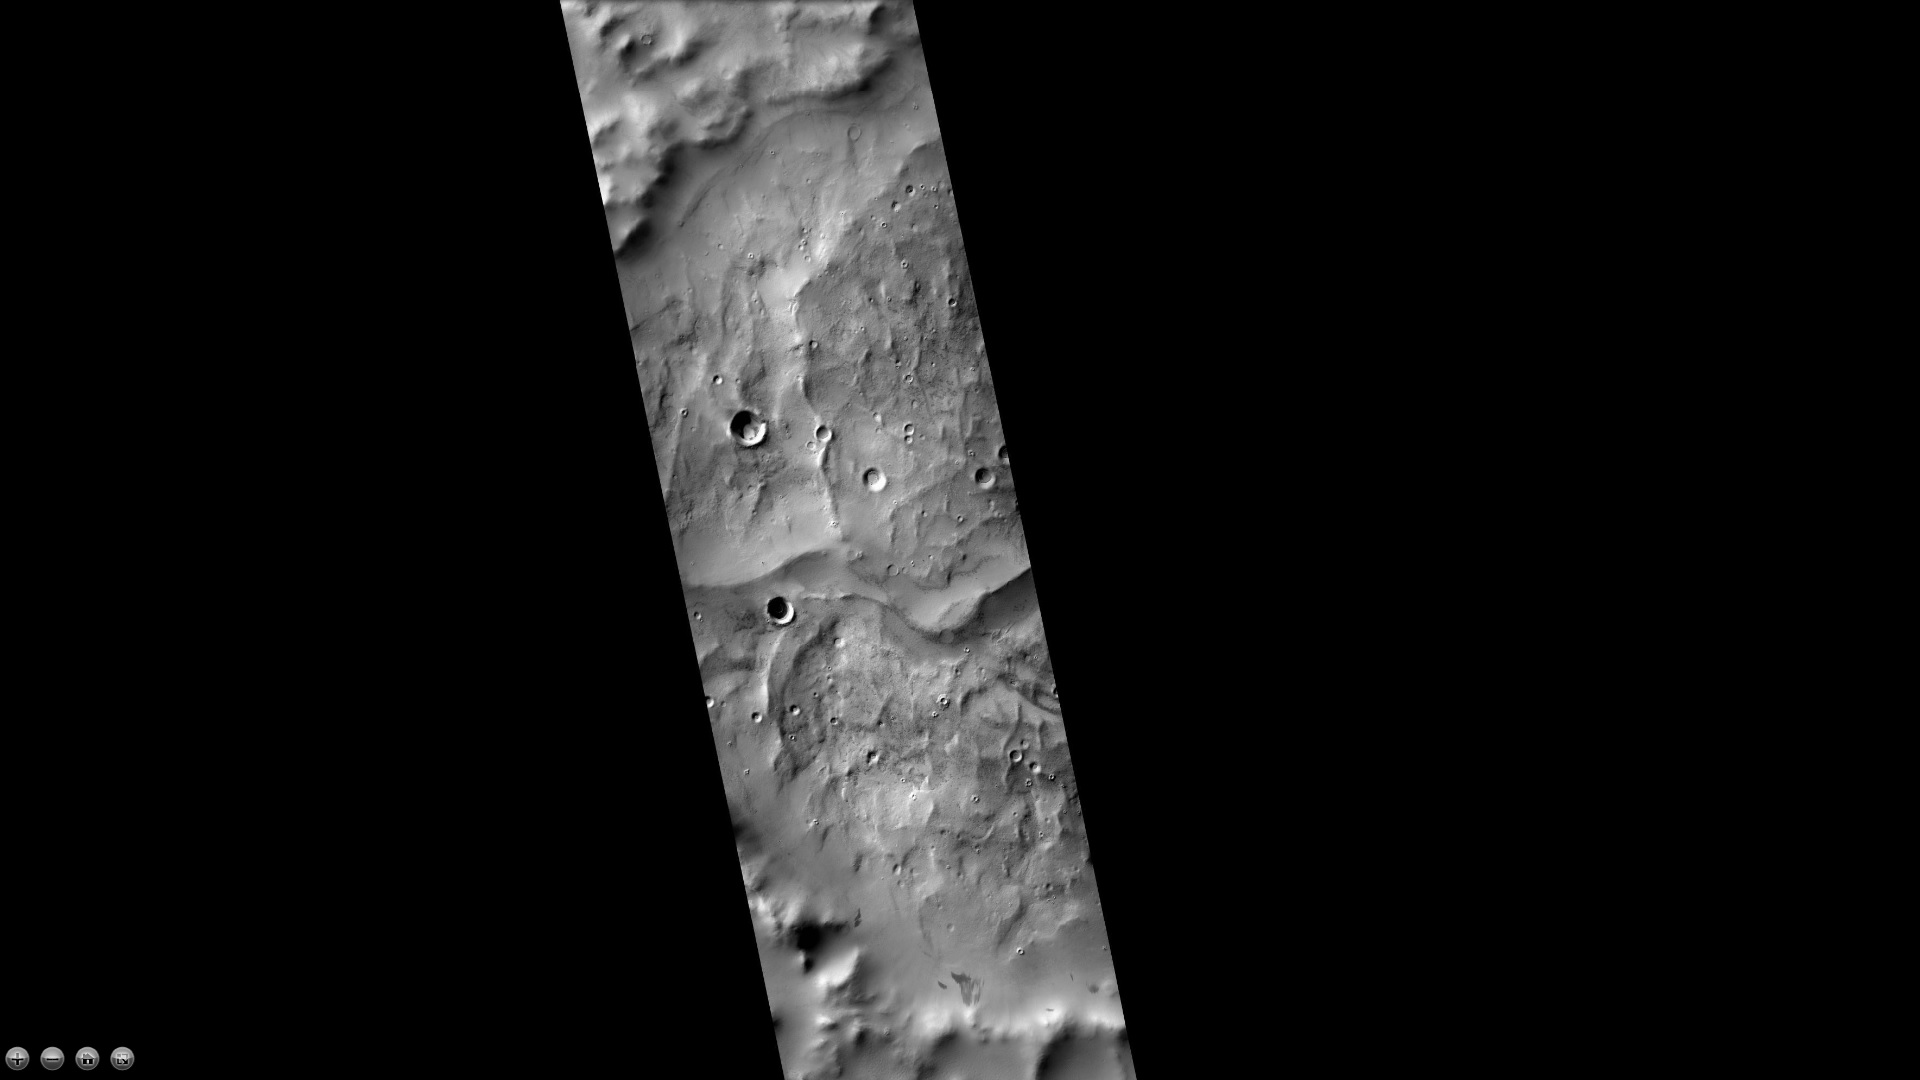 Eskers in Joly crater, as seen by CTX camera. Eskers are the ridges in the image; they are formed by streams running under a glacier.